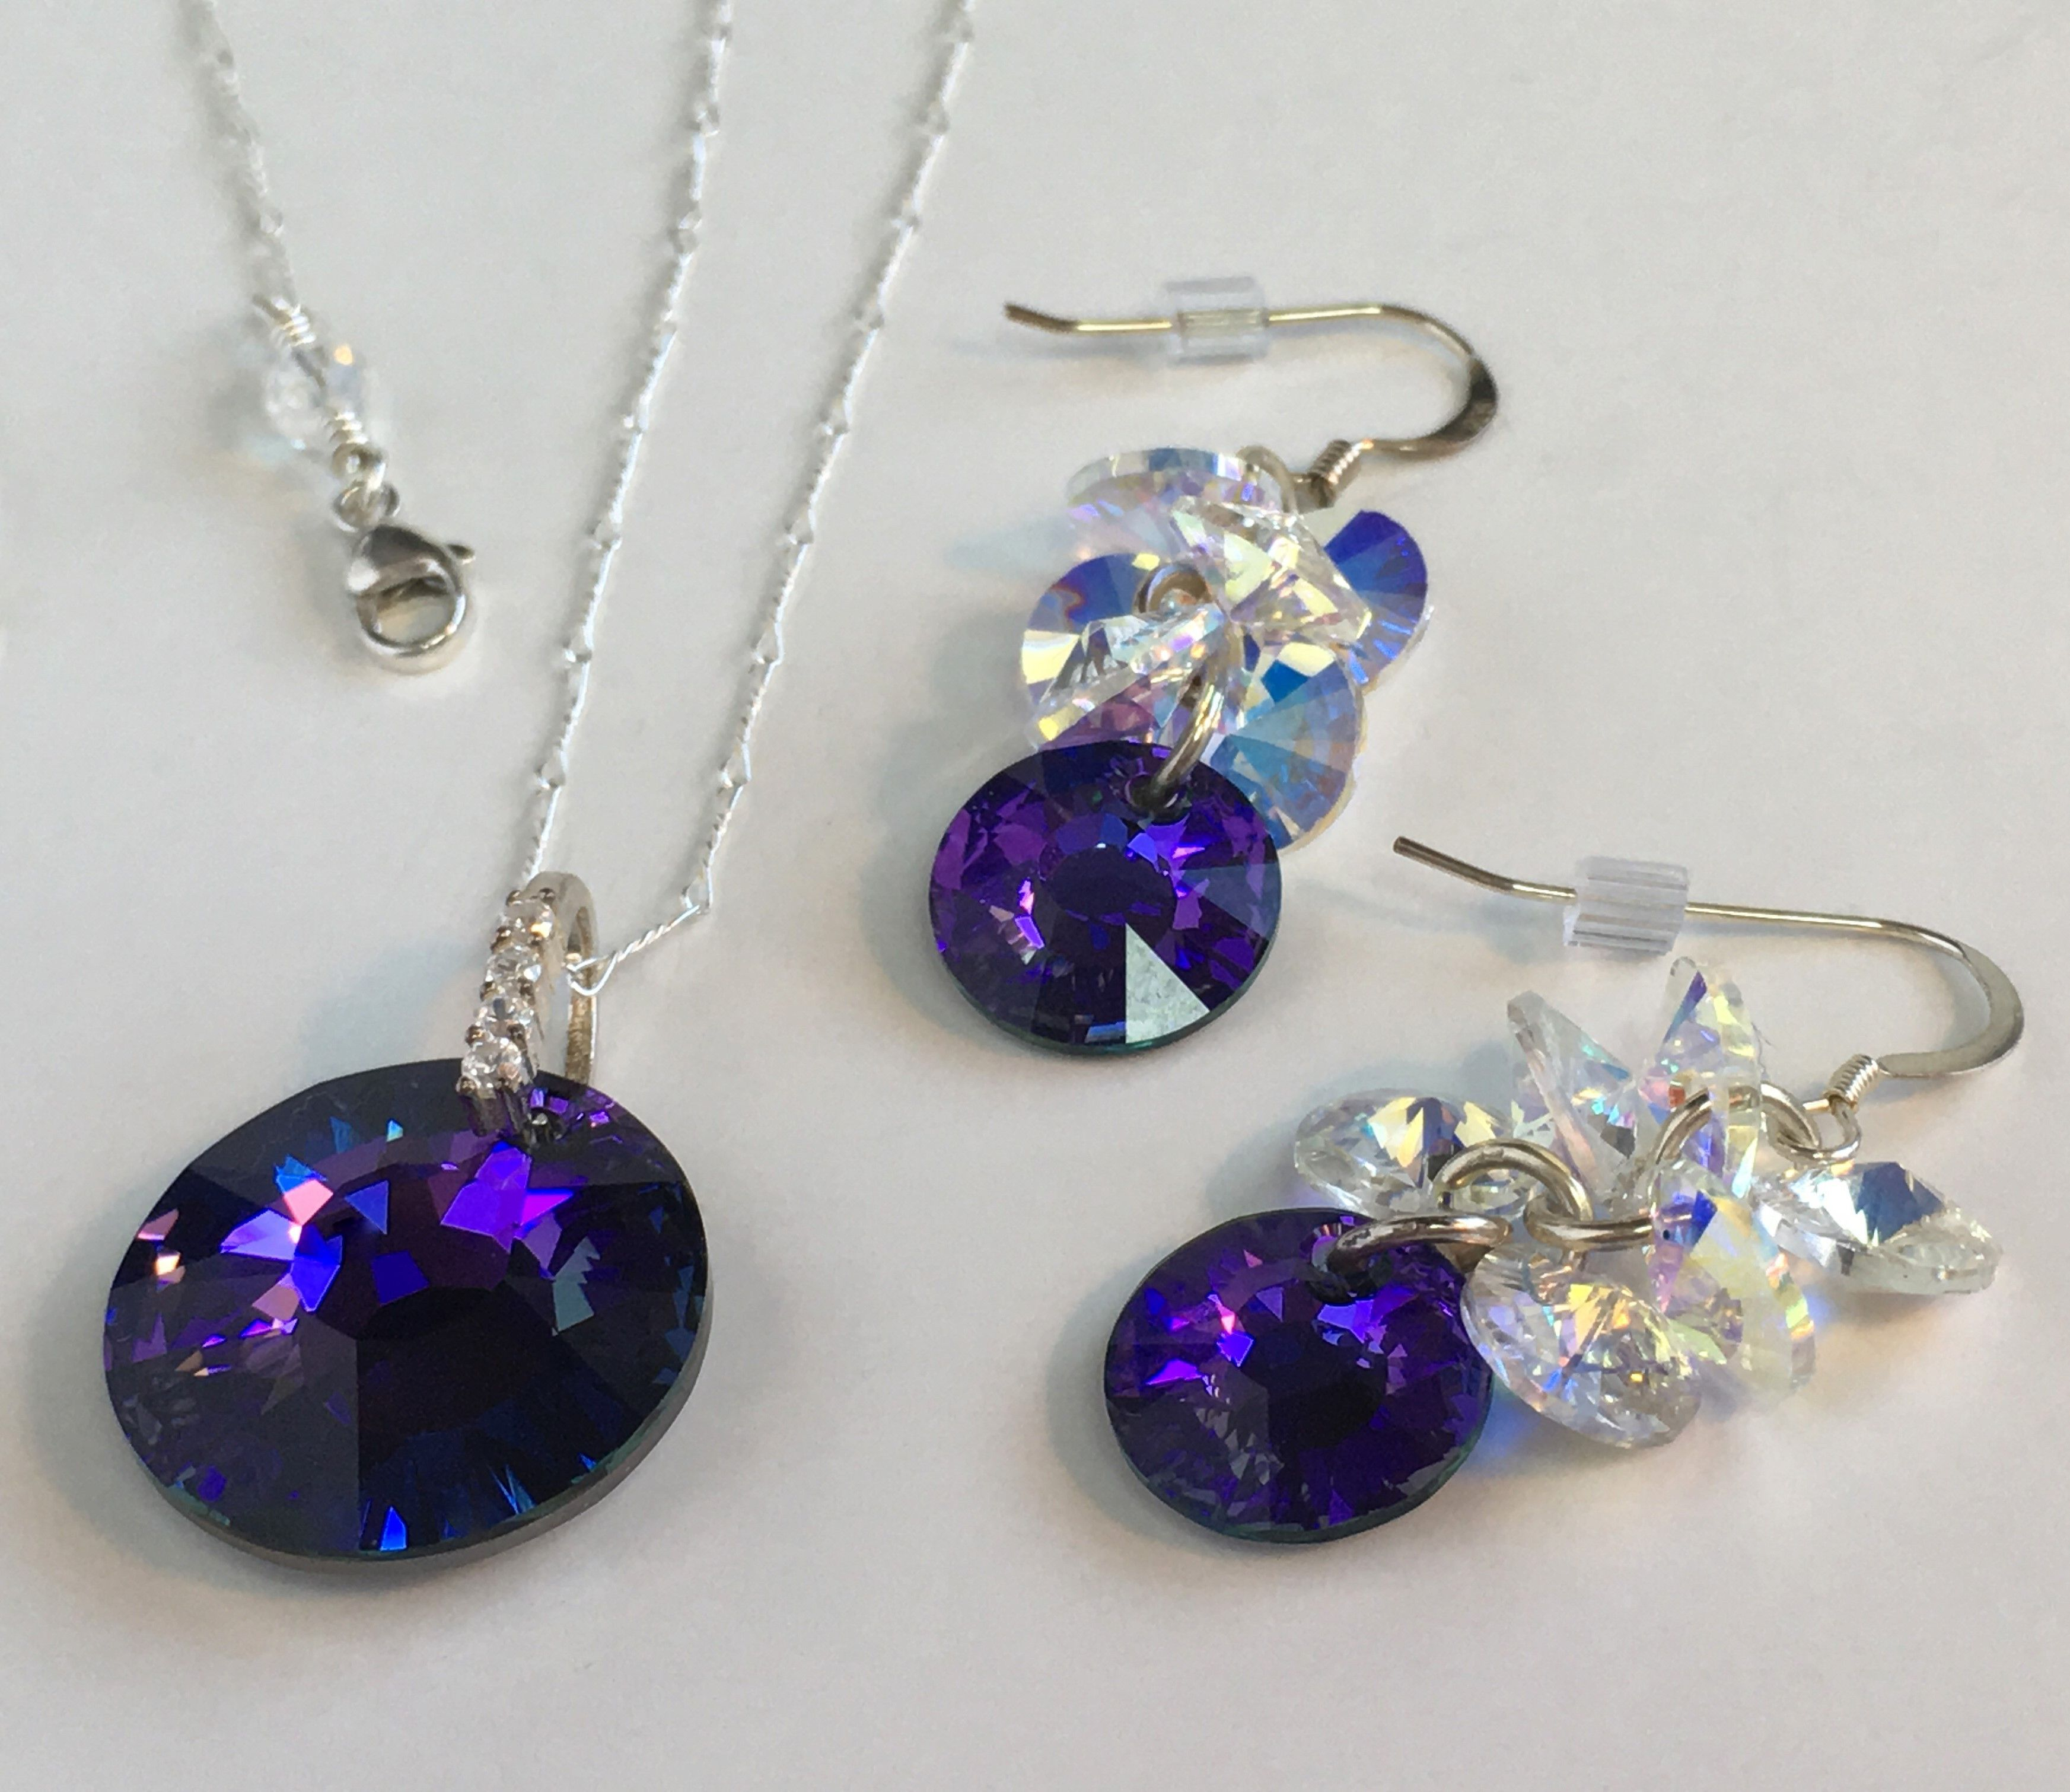 713979acb Purple Sun Swarovski Necklace and Earrings in Sterling Silver | Products